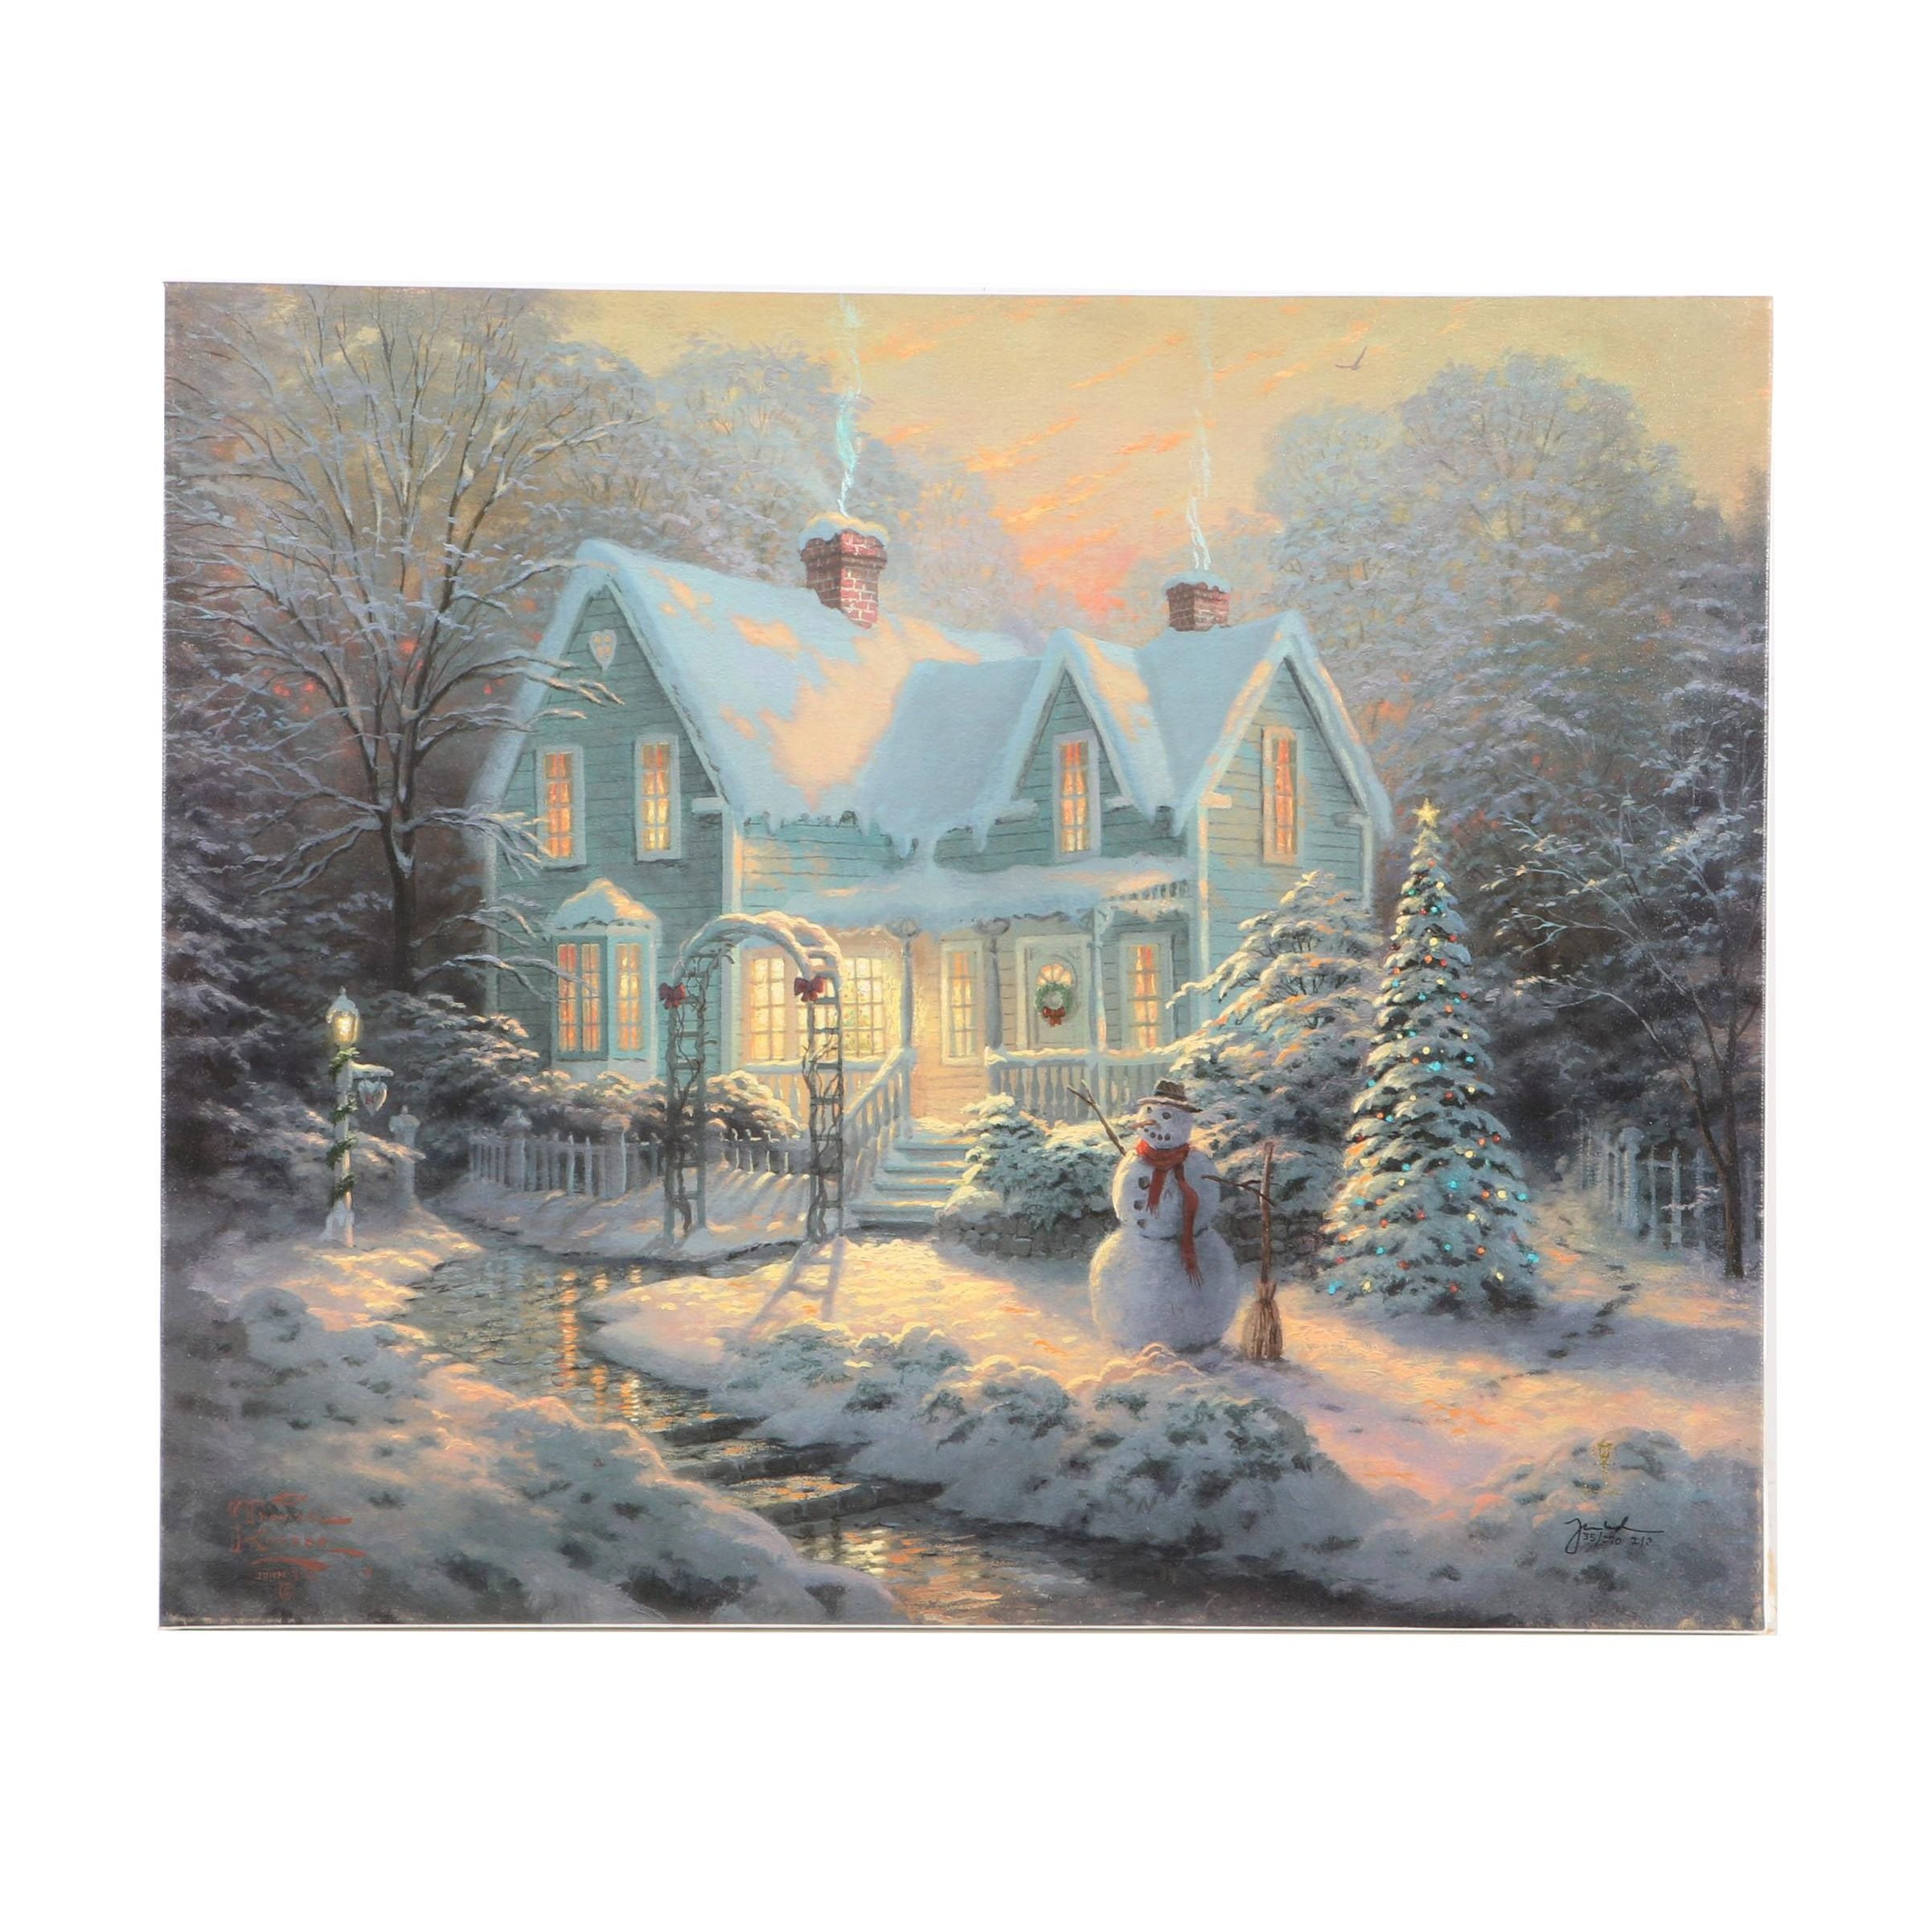 "Limited Edition Offset Lithograph After Kinkade's ""Blessings of Christmas"""